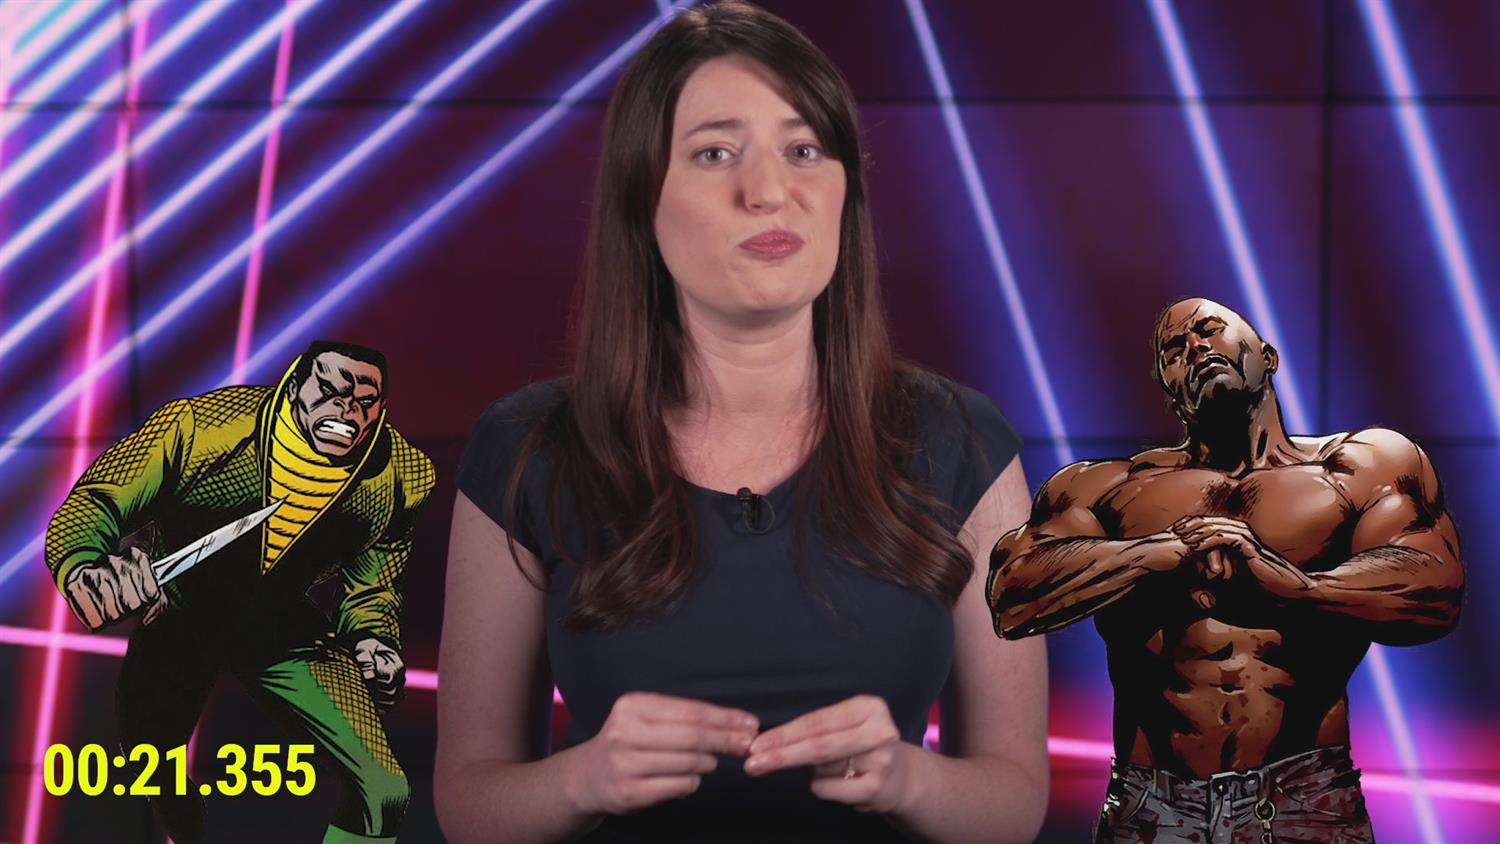 Luke Cage in 2 Minutes